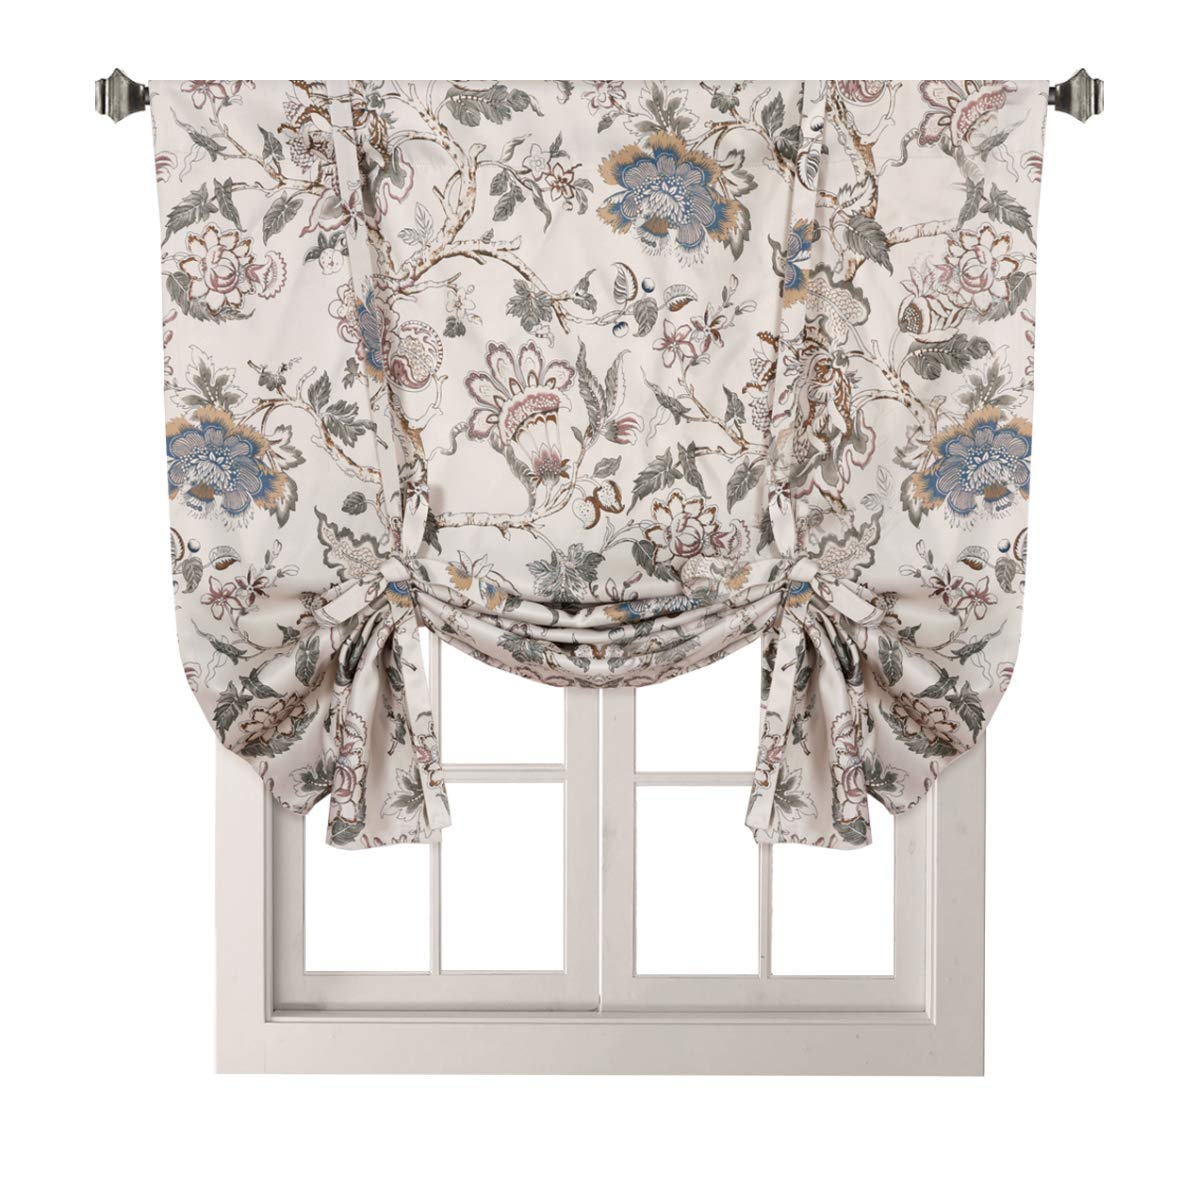 "H.VERSAILTEX Thermal Insulated Blackout Curtain Adjustable Tie Up Shade Rod Pocket Panel for Small Window-42 Wide by 63"" Long-Vintage Floral Pattern in Sage and Brown"